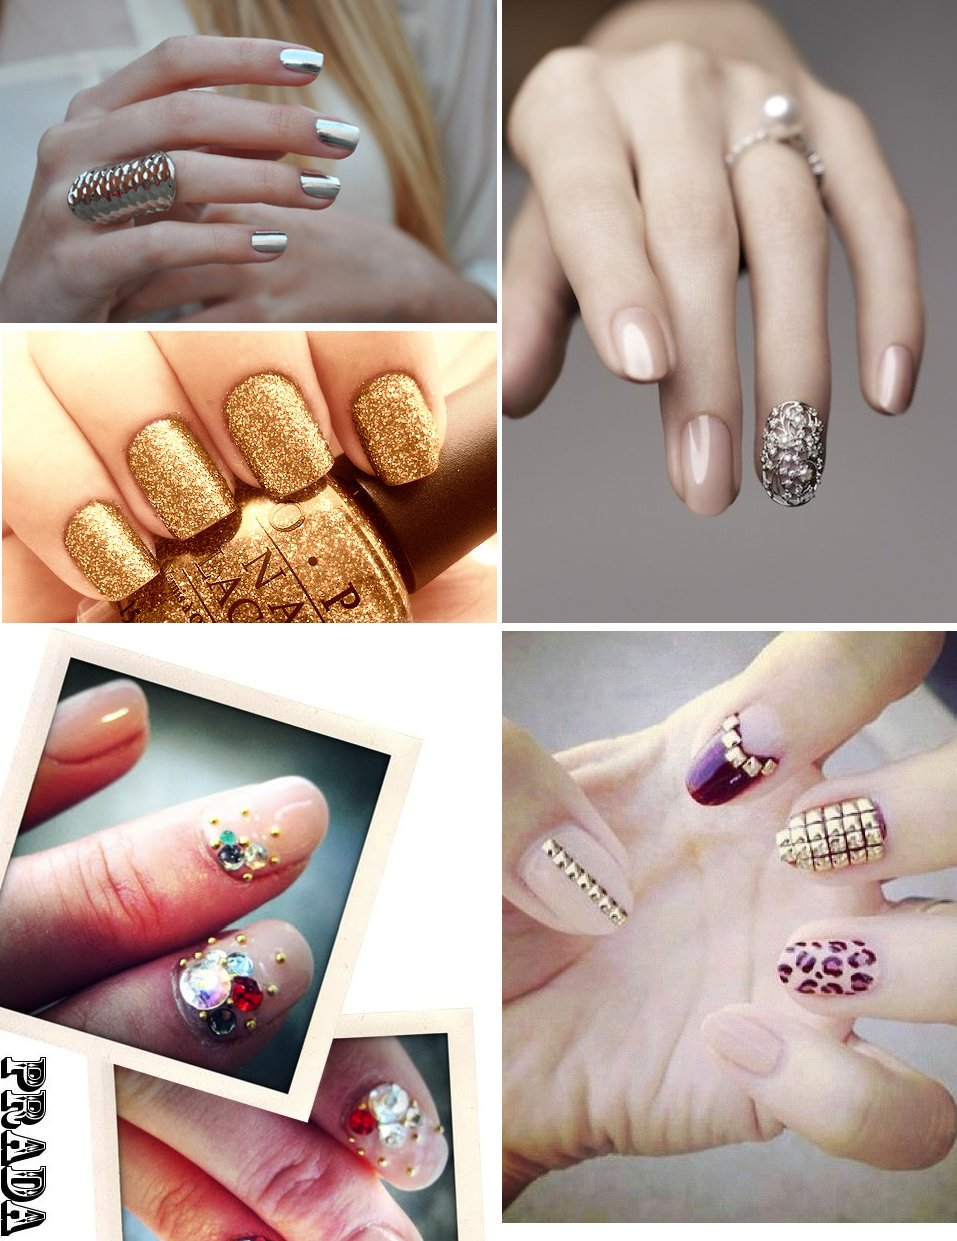 Awesome-wedding-day-manicures-for-beauty-loving-brides-glam-sparkly-metallic.full